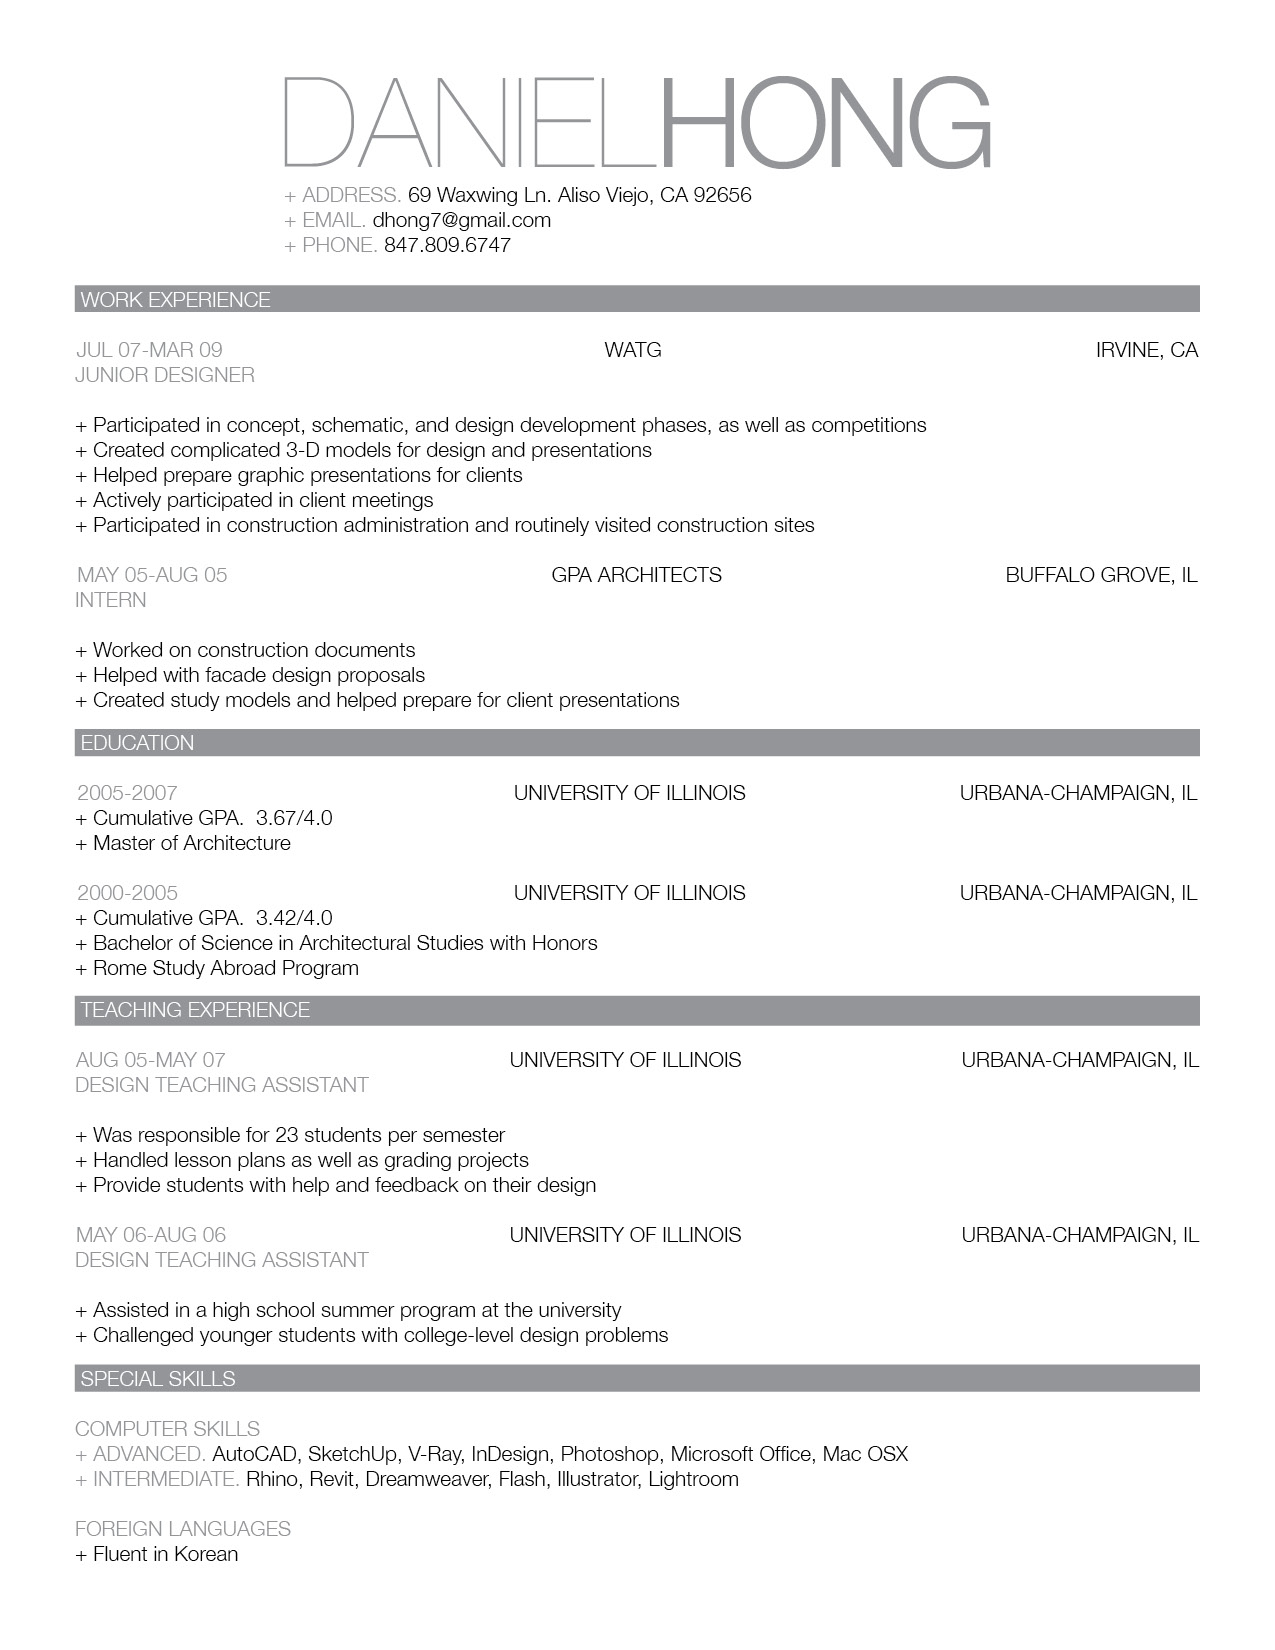 good looking resume designs